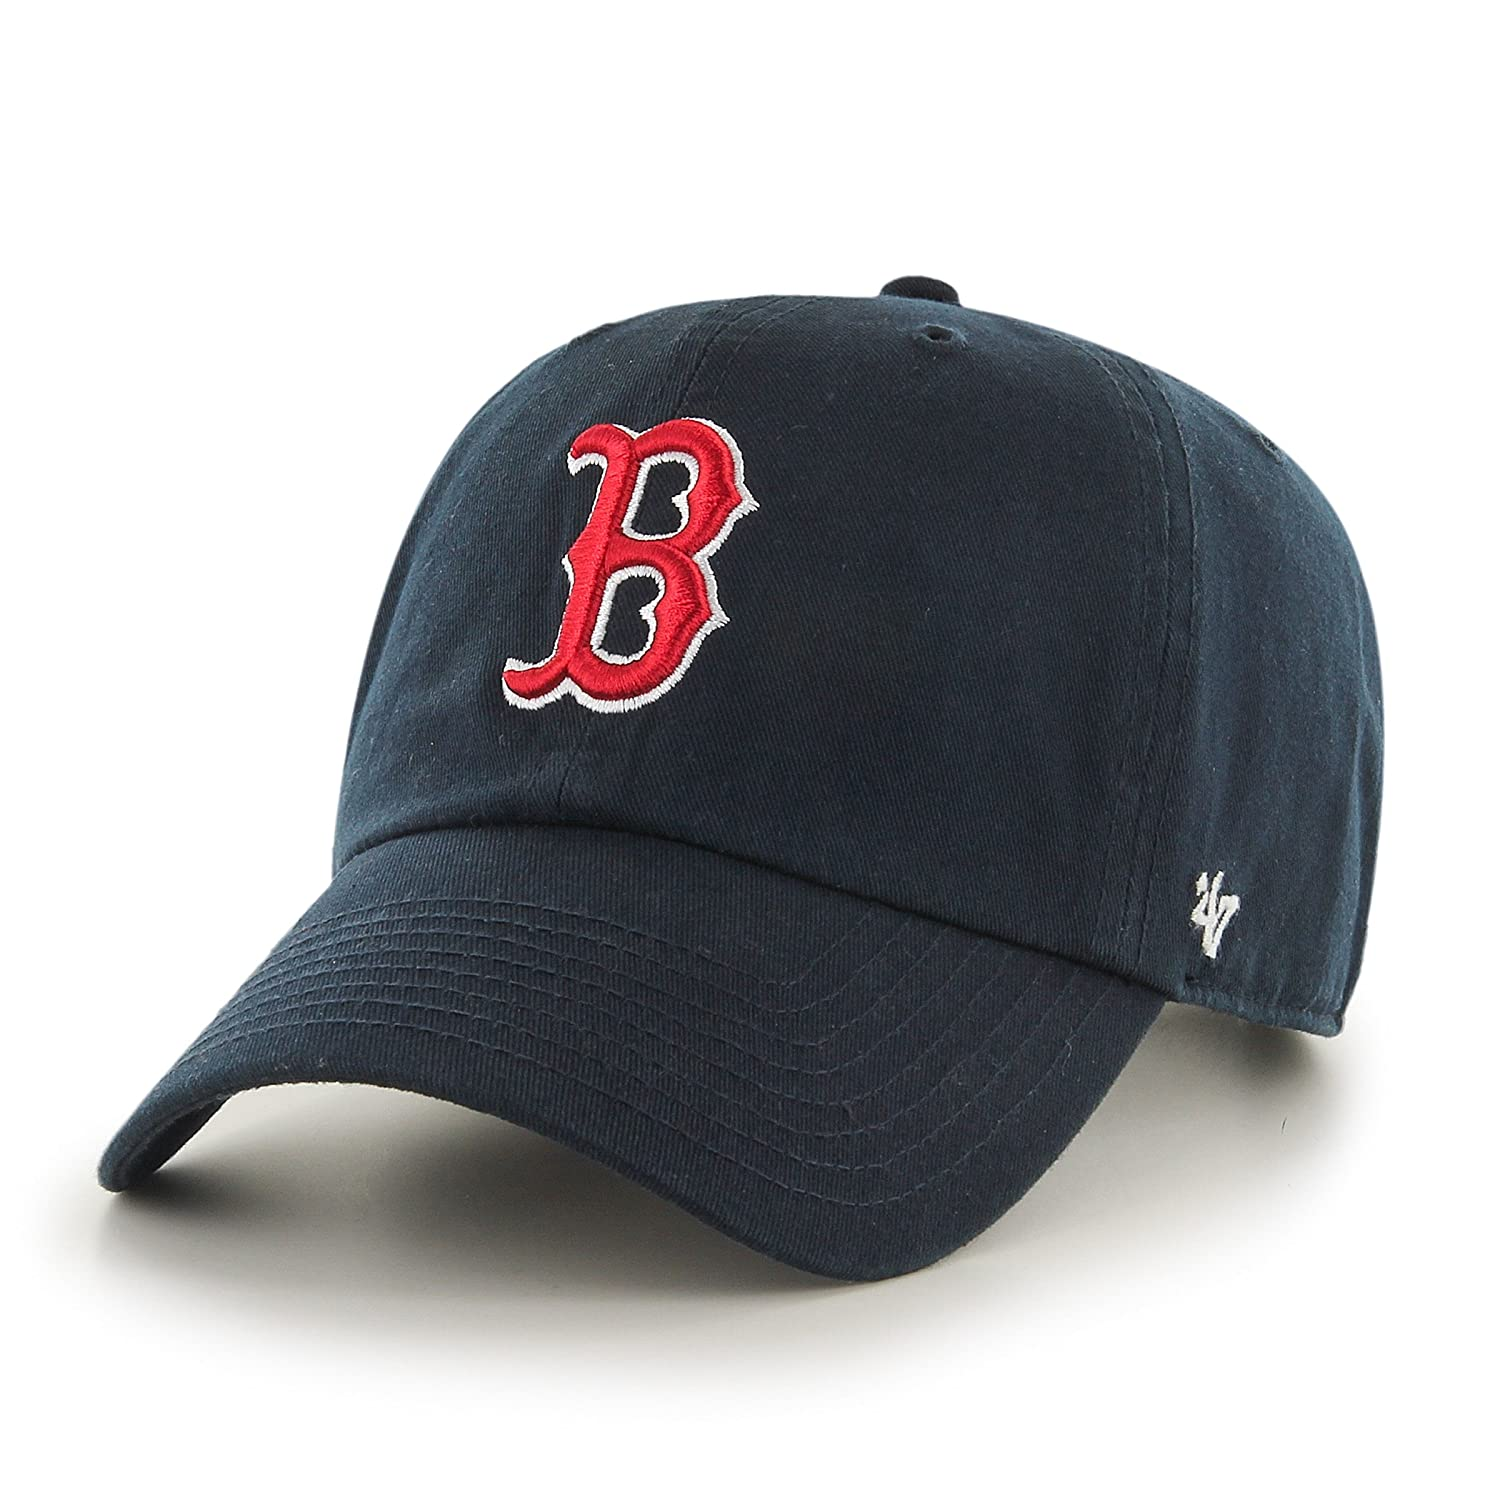 e81438b832f02 Amazon.com  Boston Red Sox - MLB   Fan Shop  Sports   Outdoors